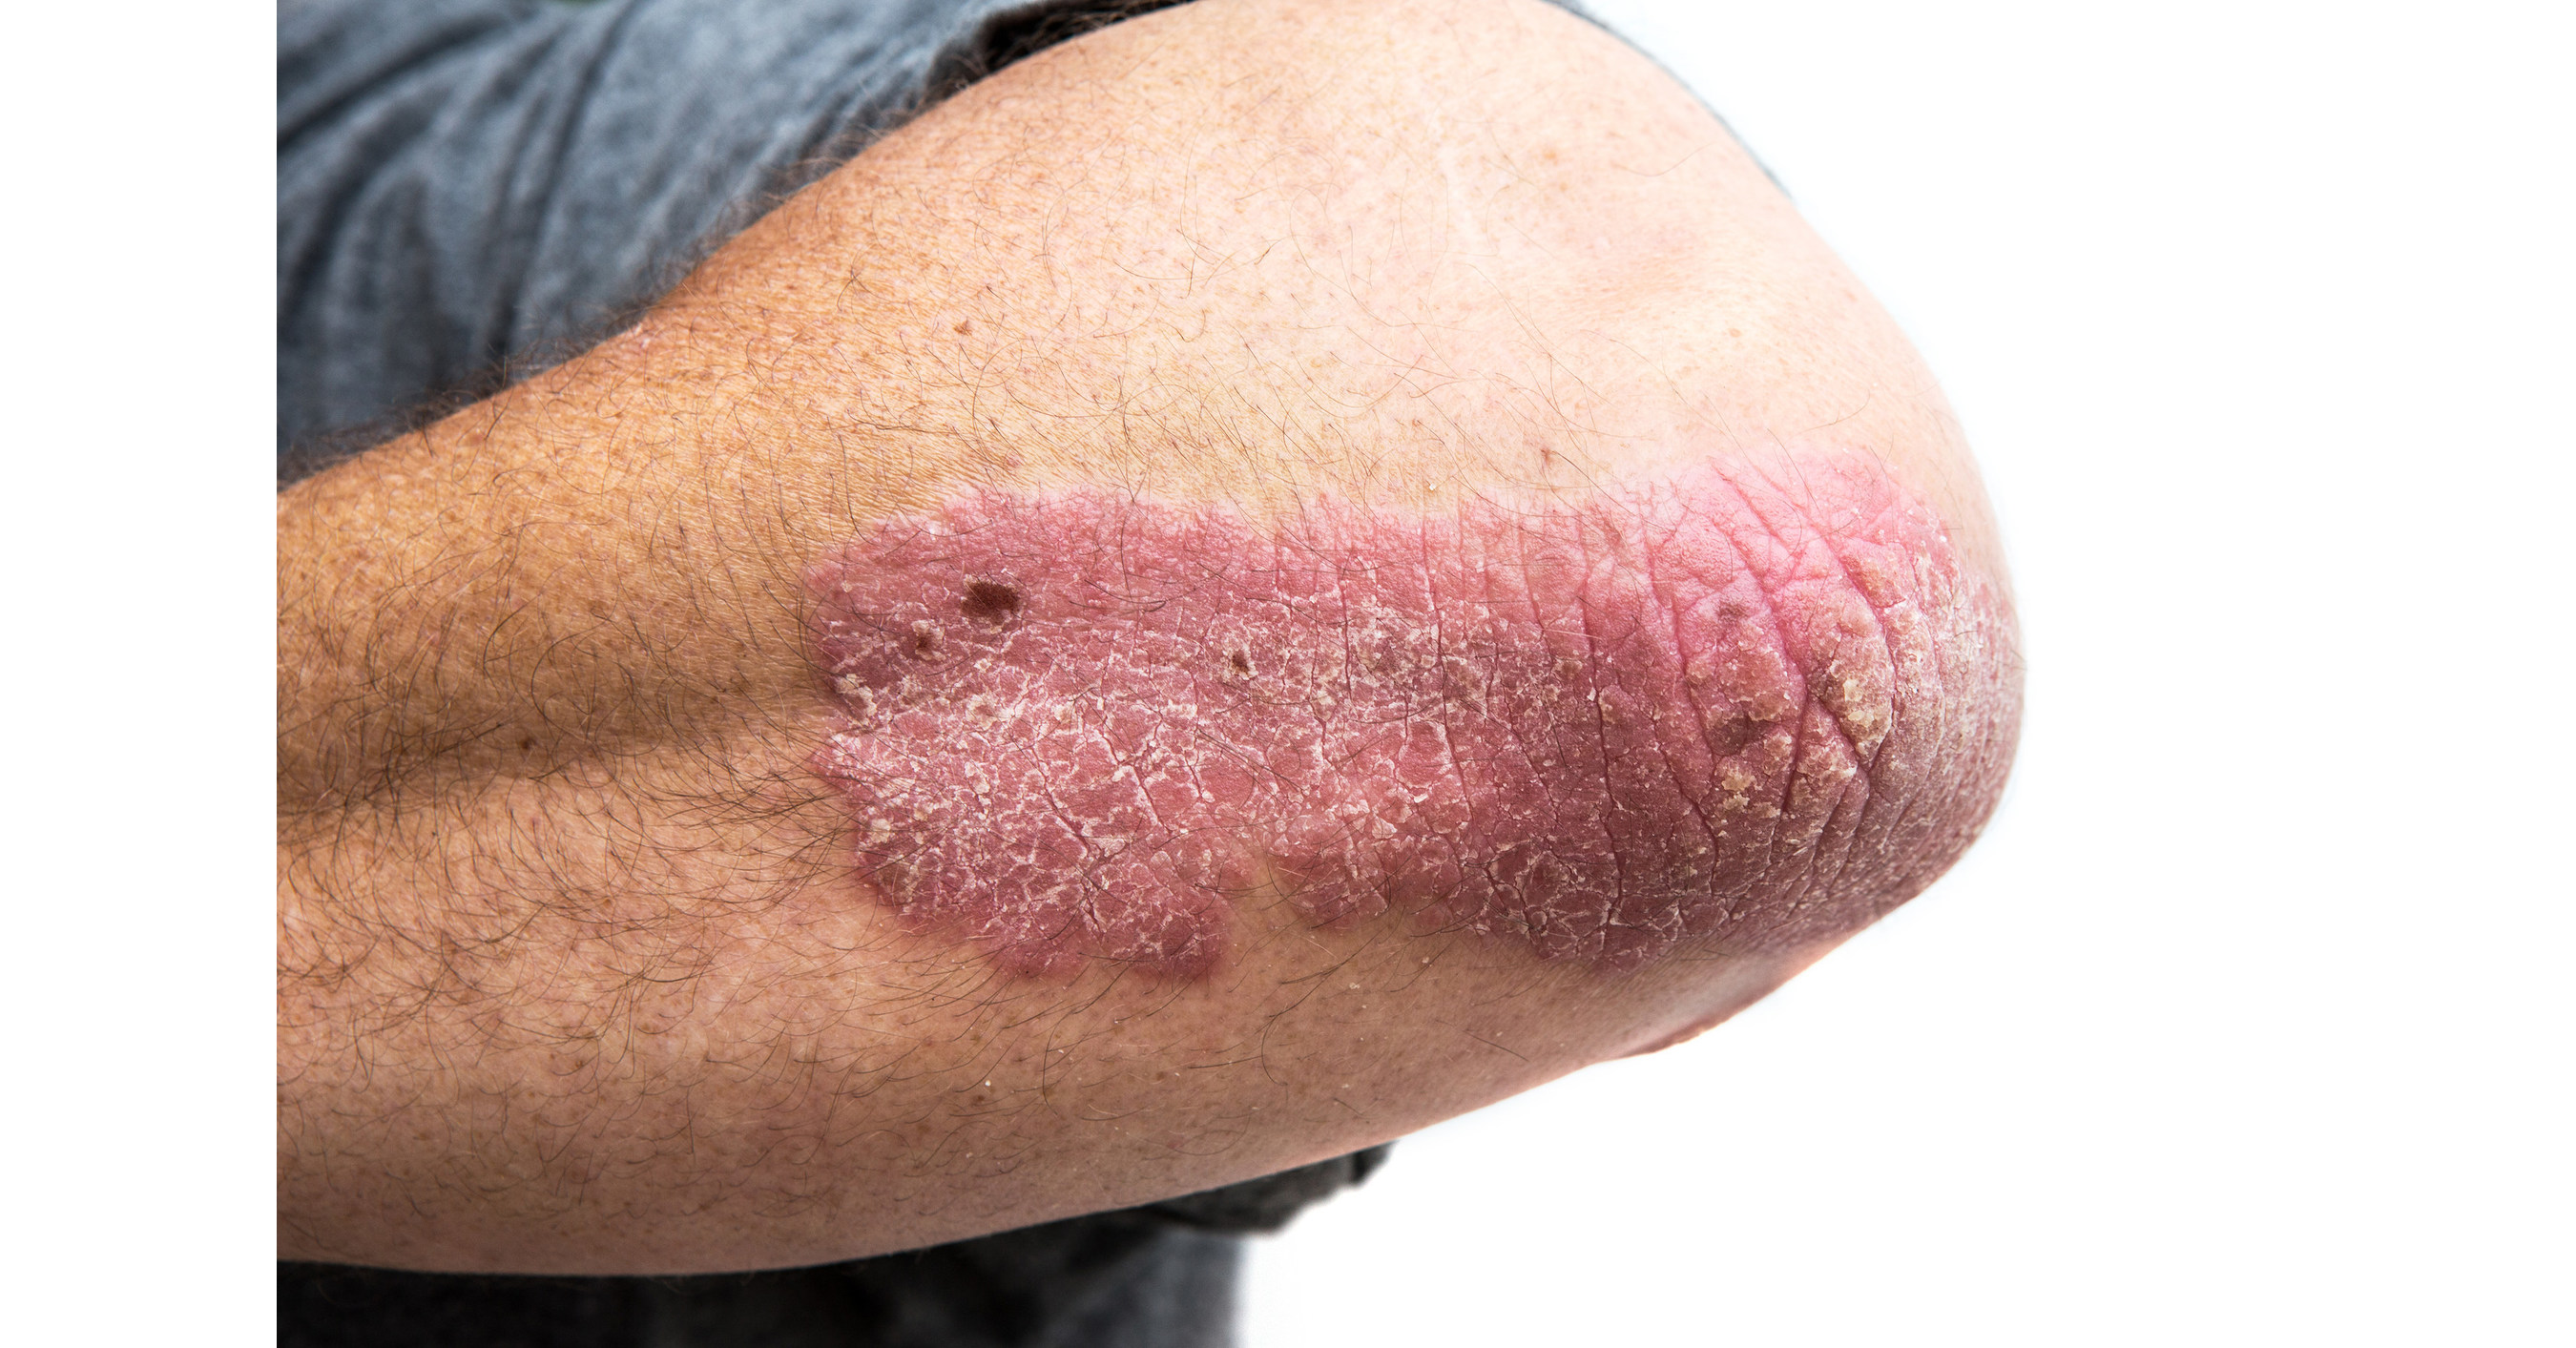 is psoriasis: a disability in canada)